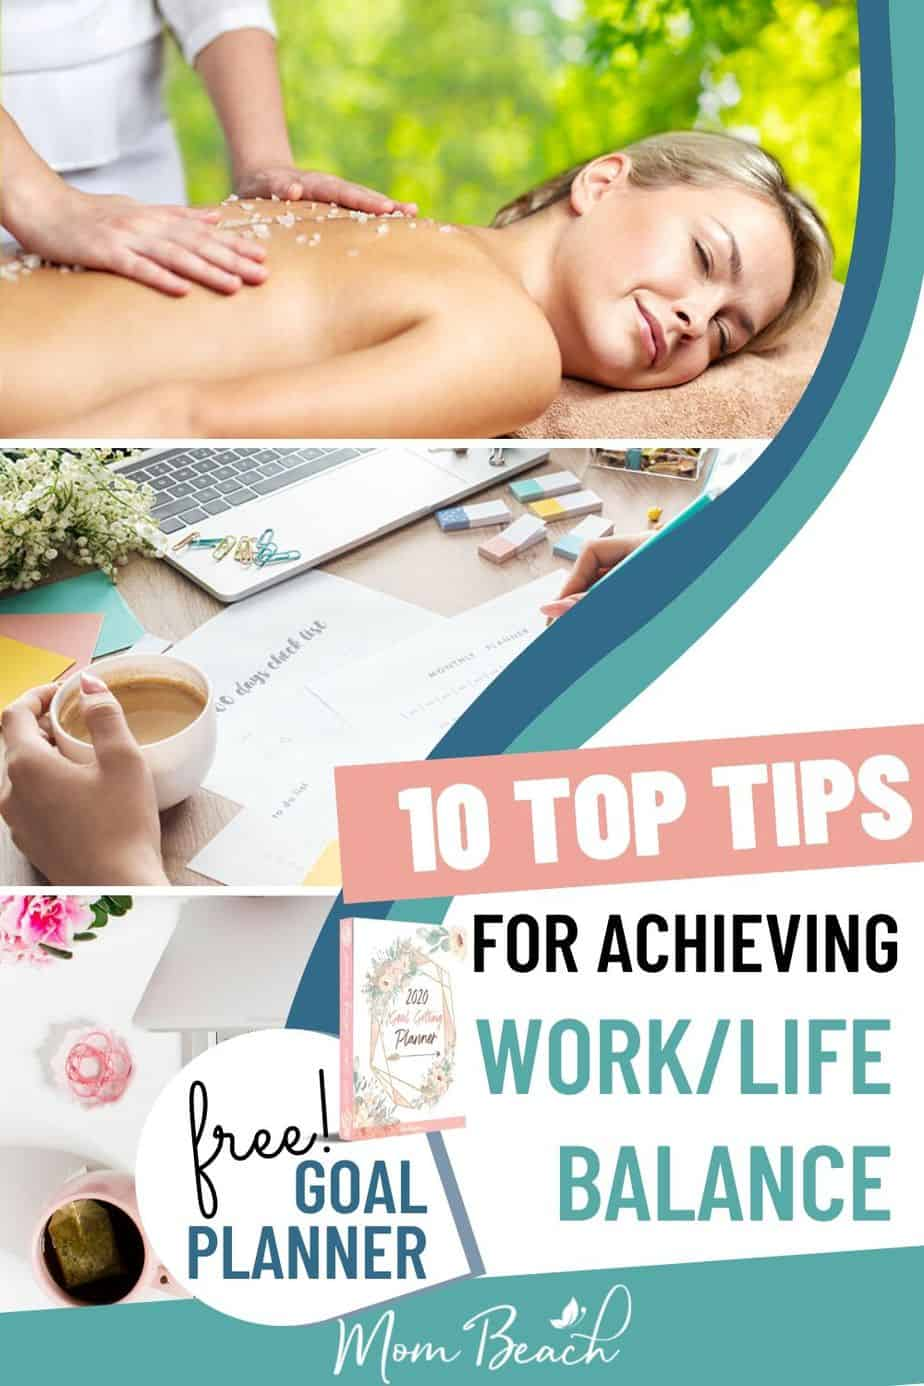 Achieving an awesome work-life balance can be difficult! With these top 10 tips, you can get work life balance easily. There are so many ways women can use these tips and hacks for balance in work and life. Keep your rewarding career and have a wonderful home life too with your children. #worklifebalance #worklifebalancetips #worklifebalancewomen #worklifebalancemoms #mompreneur